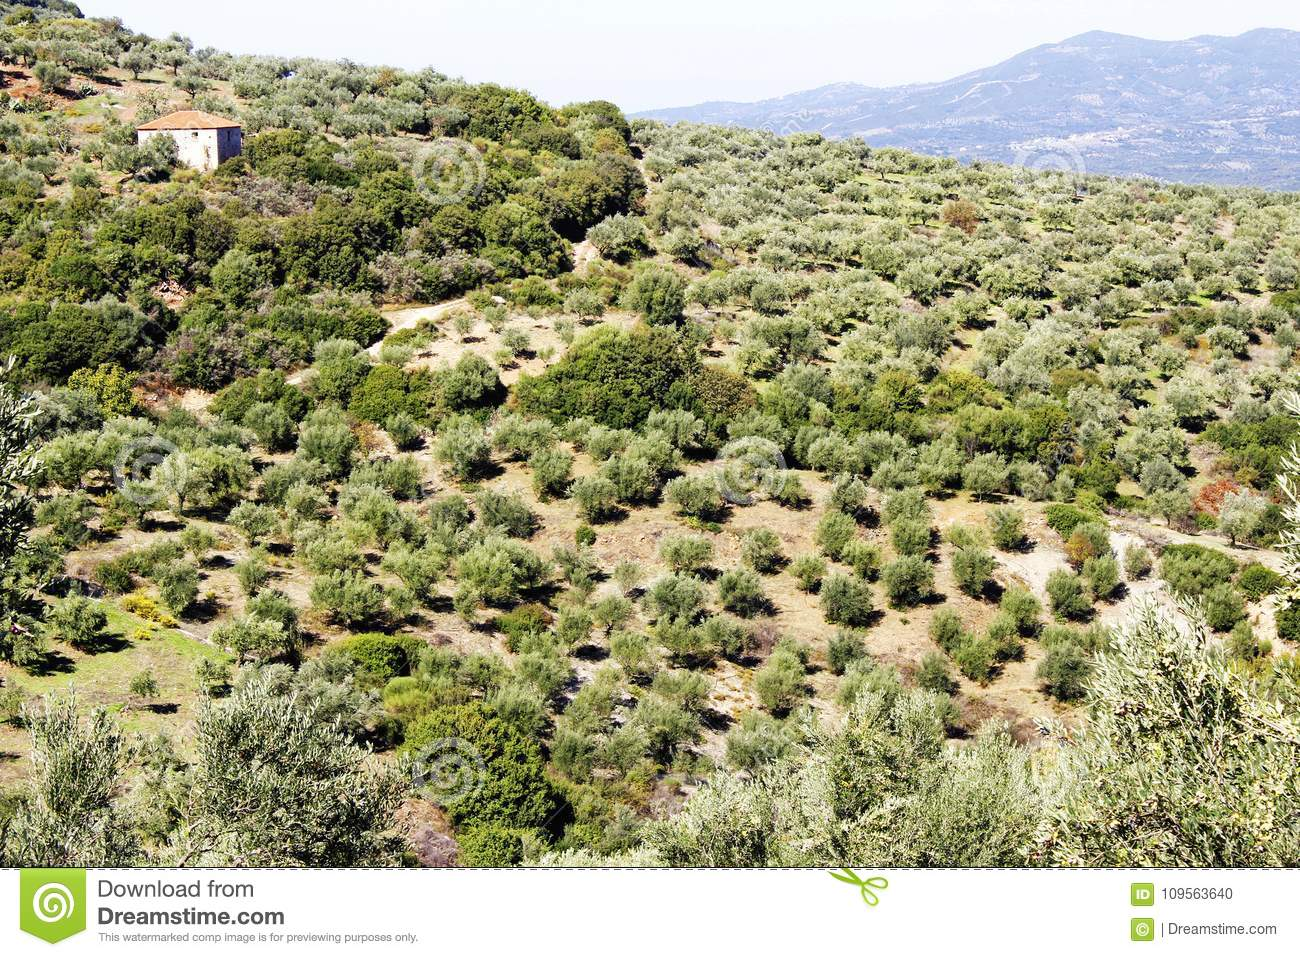 Olive grove with Koroneiki olives in Peloponnese, Greece